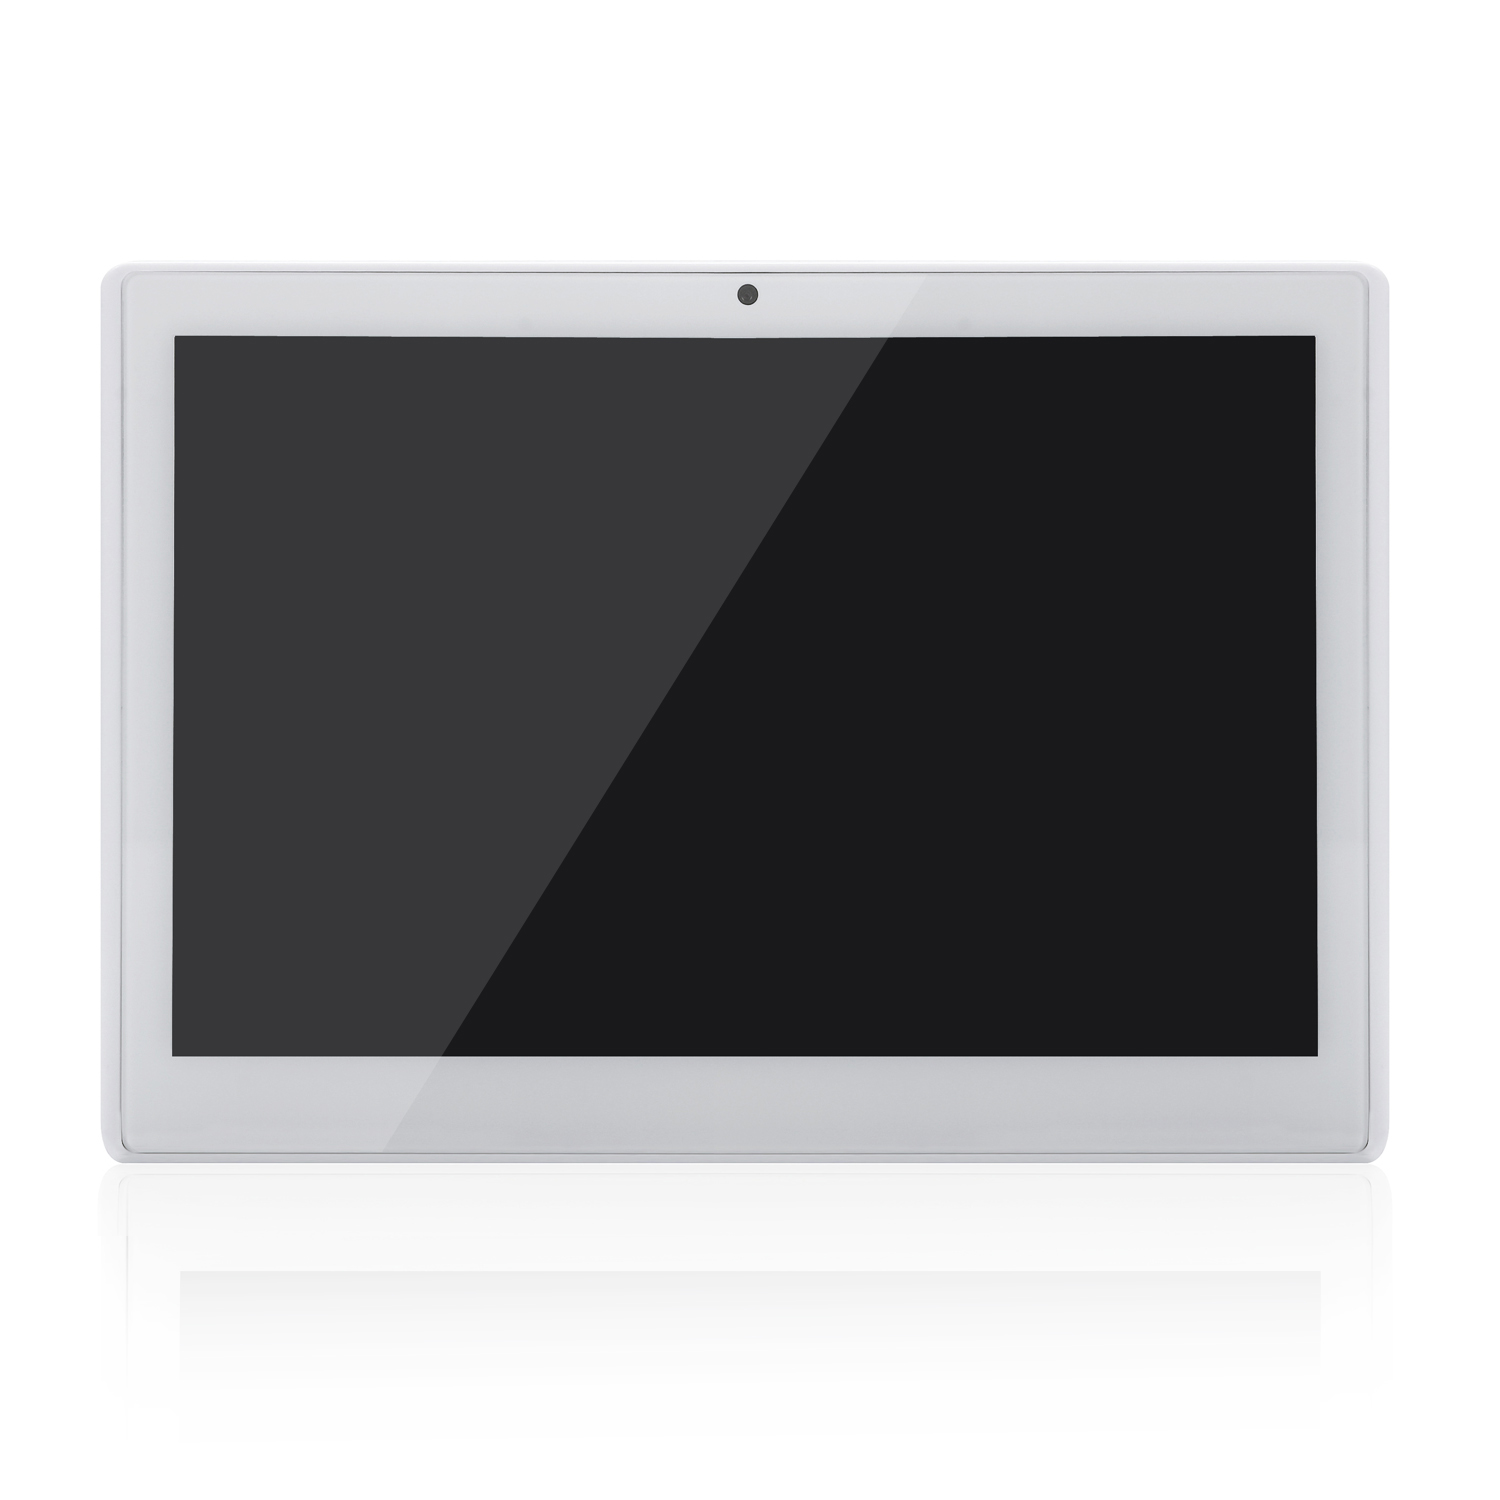 10 Inch Tablet pc Android 5.1 Original 3G Android Quad Core 2GB RAM 16GB ROM WiFi FM IPS LCD 2G+16G Tablets Pc